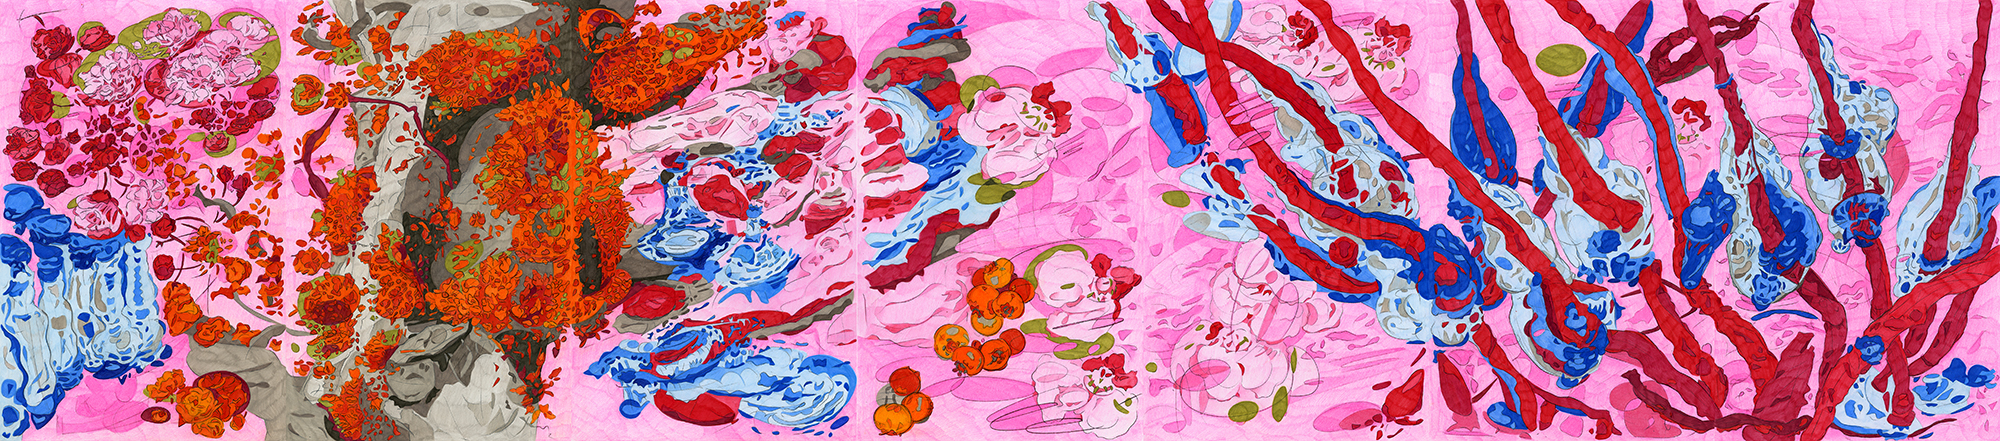 """Expulsion from Paradise,  2009, color pencil on paper,17"""" x 77"""""""